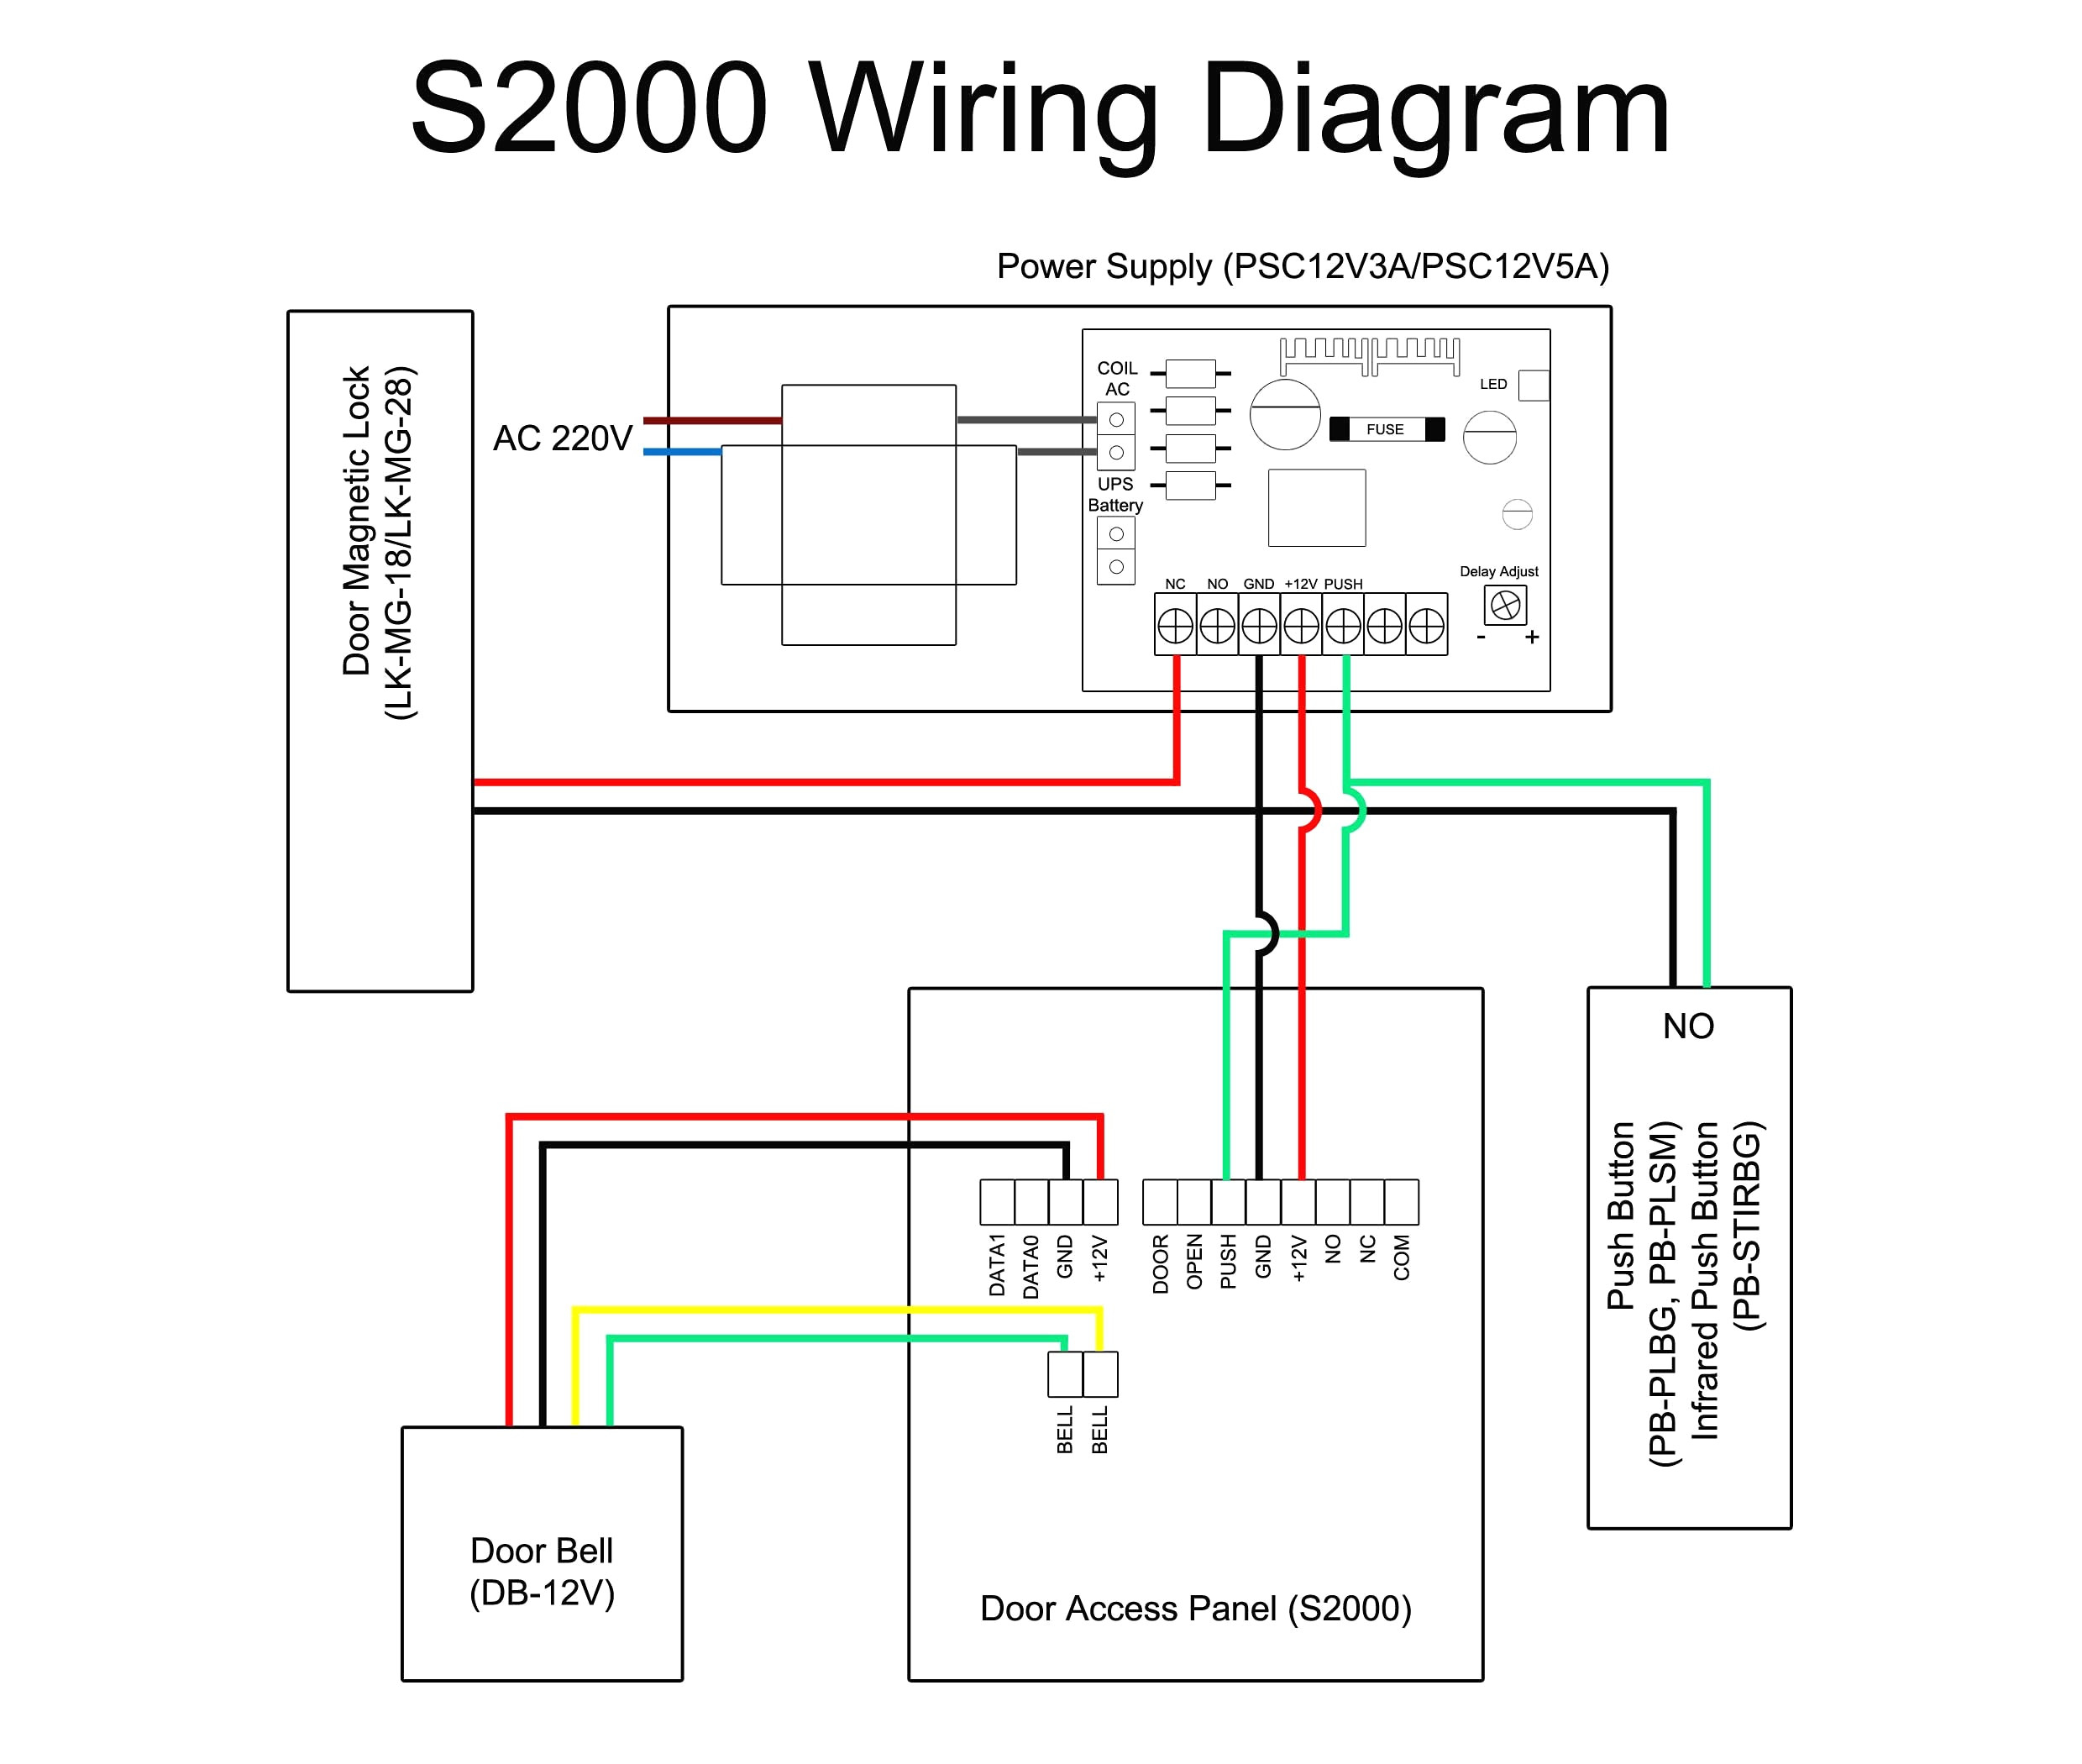 Wiring Diagram For Security Camera from wholefoodsonabudget.com